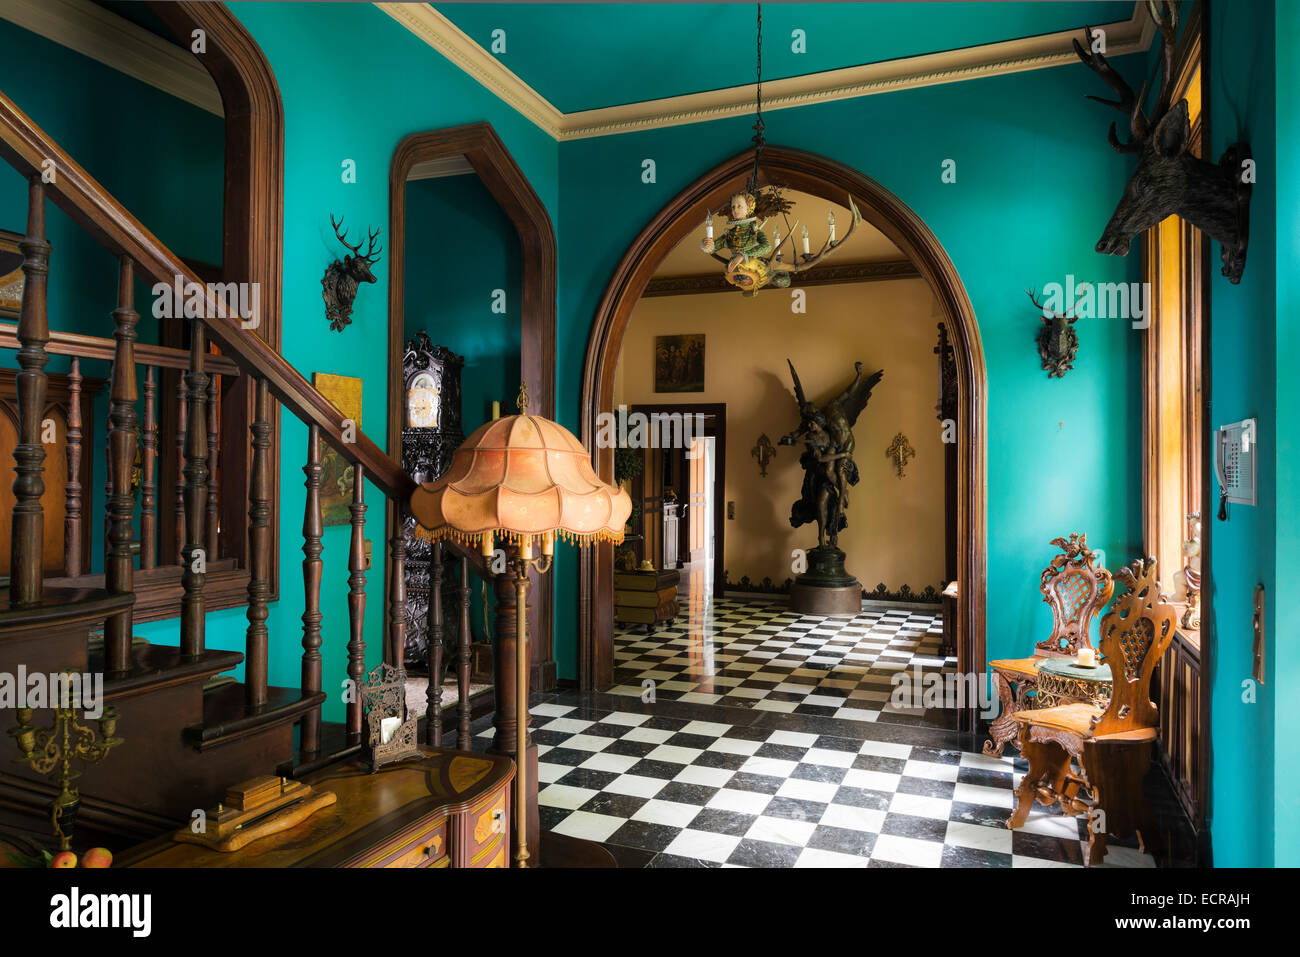 Chequered marble floor in entrance hall of castle with arched doorways and bronze sculptures - Stock Image